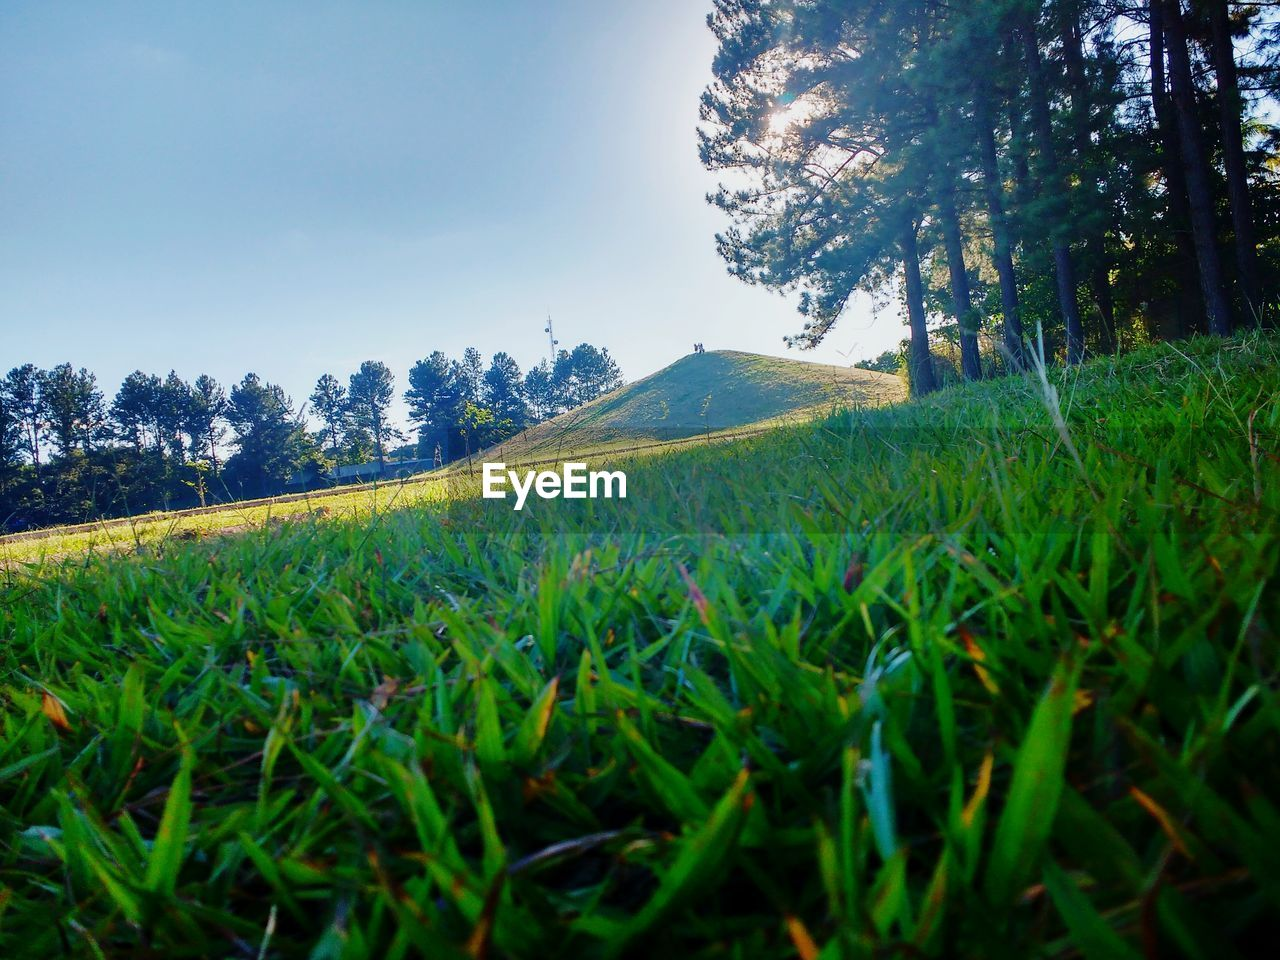 grass, growth, nature, field, tree, tranquil scene, tranquility, green color, landscape, beauty in nature, green, scenics, agriculture, no people, day, rural scene, outdoors, sky, clear sky